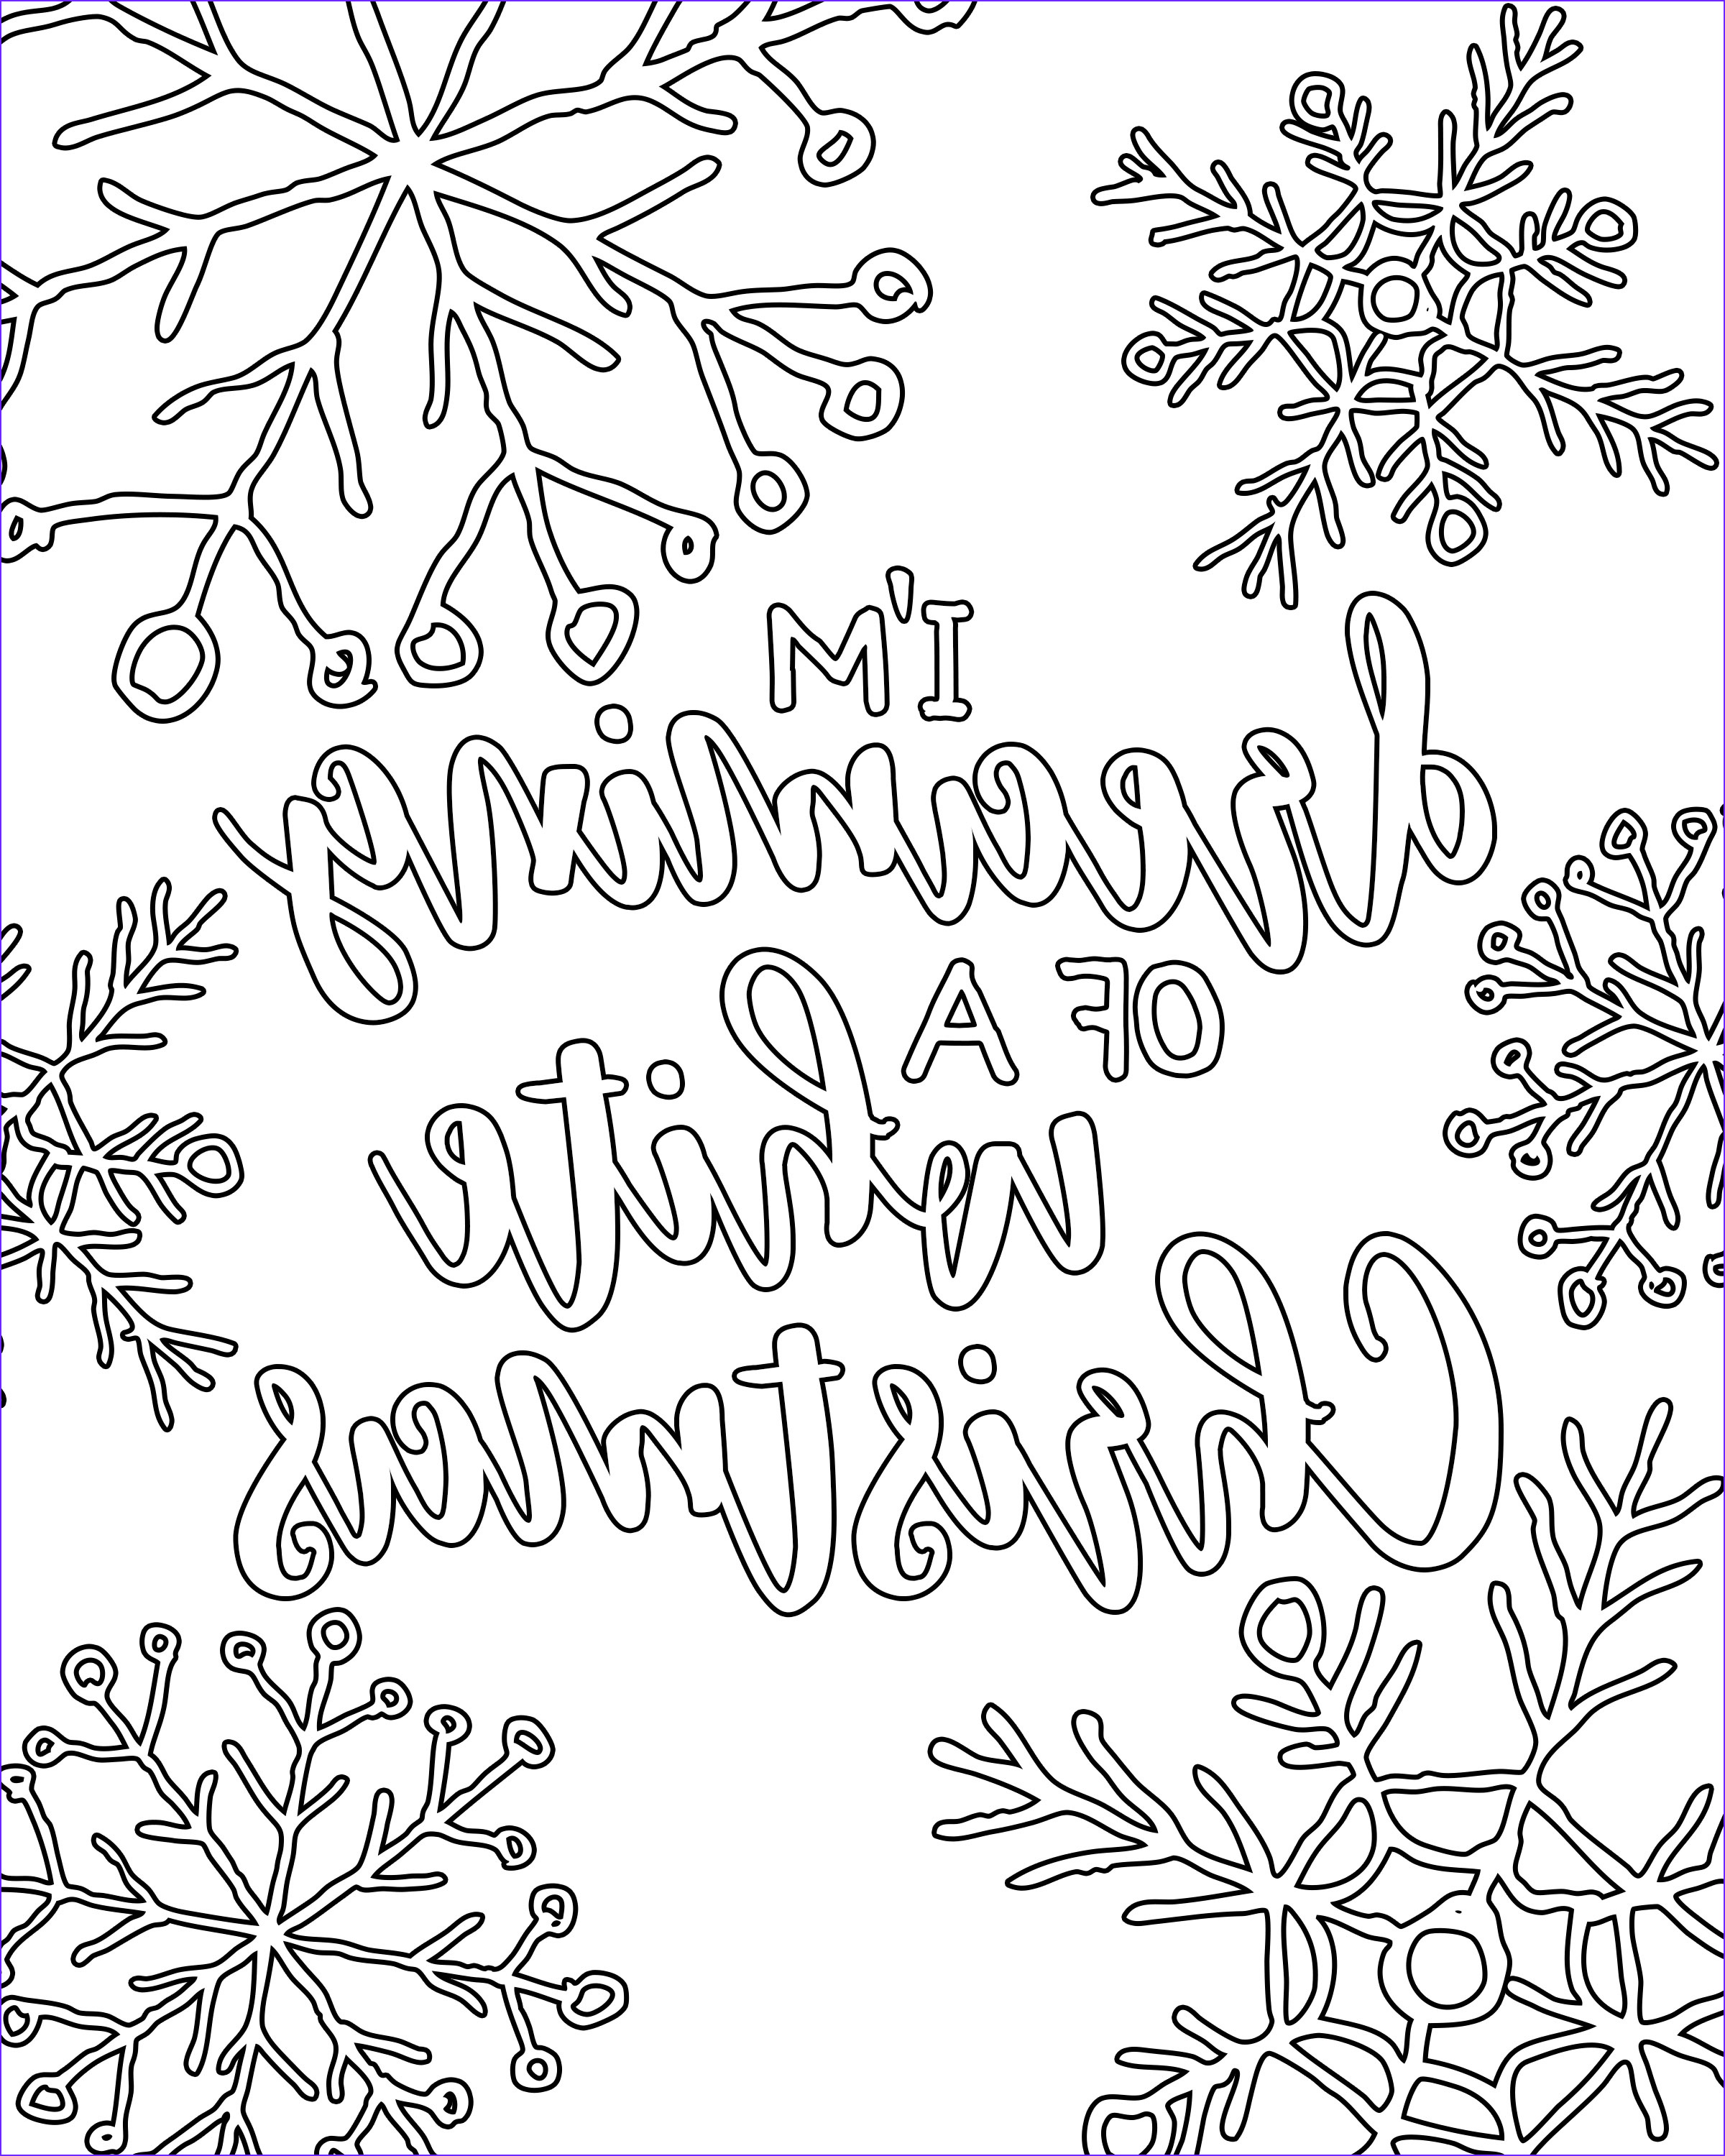 Coloring Pages Christmas Beautiful Images Free Printable White Christmas Adult Coloring Pages Our